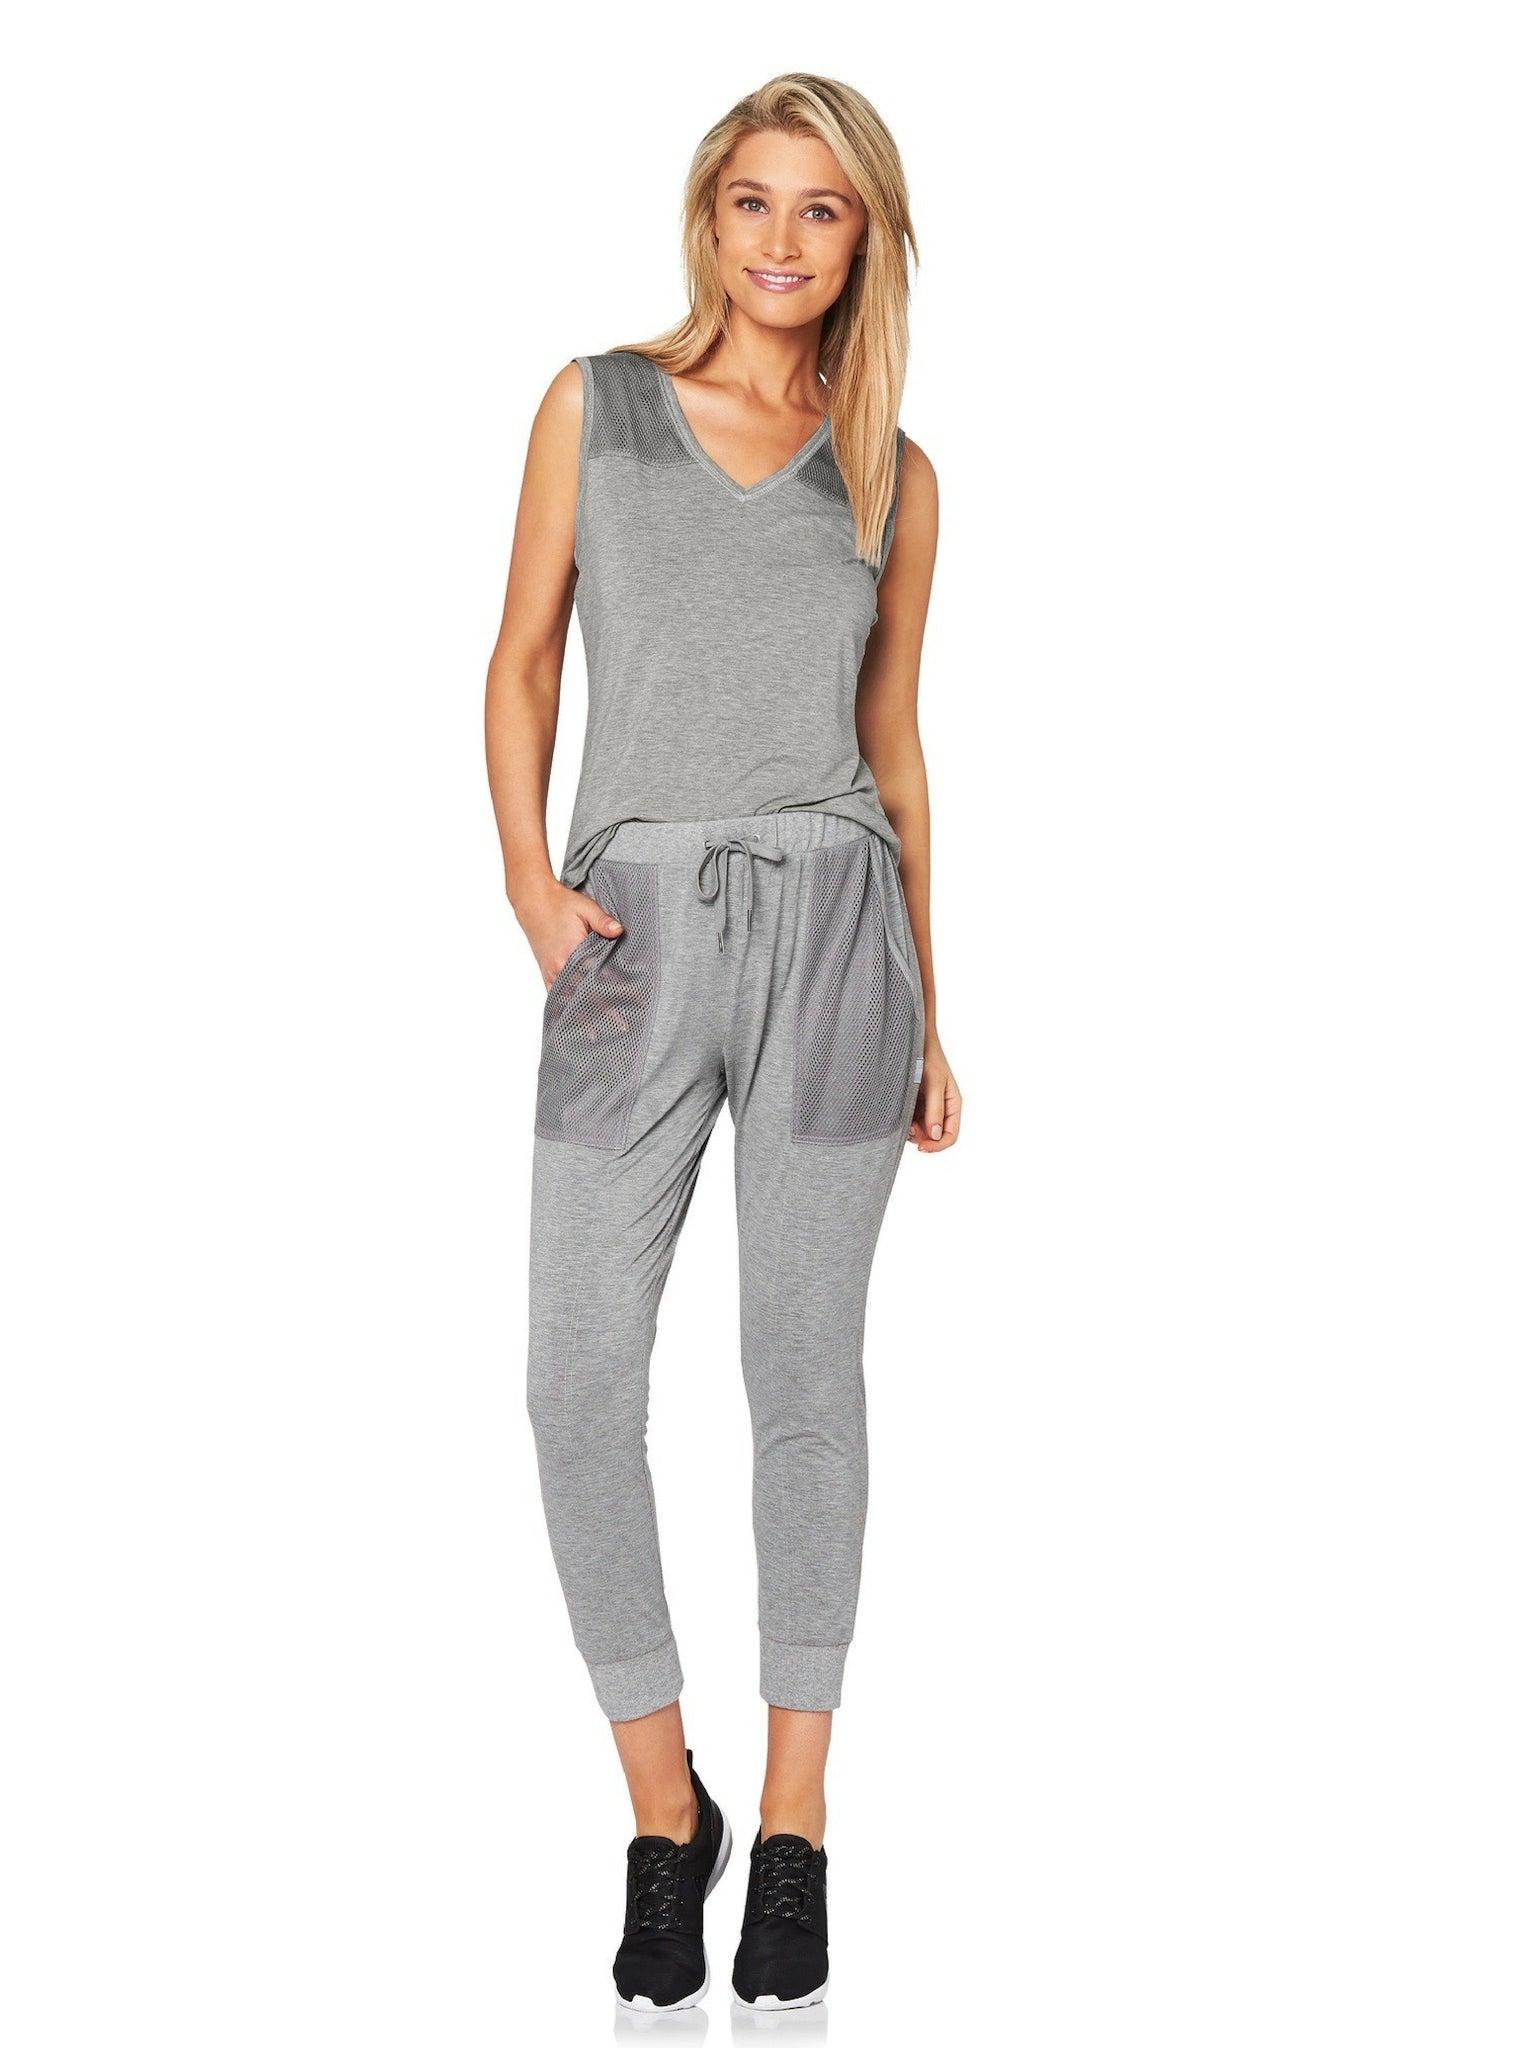 LILLY 3/4 MESH POCKET PANT - GREY MARLE